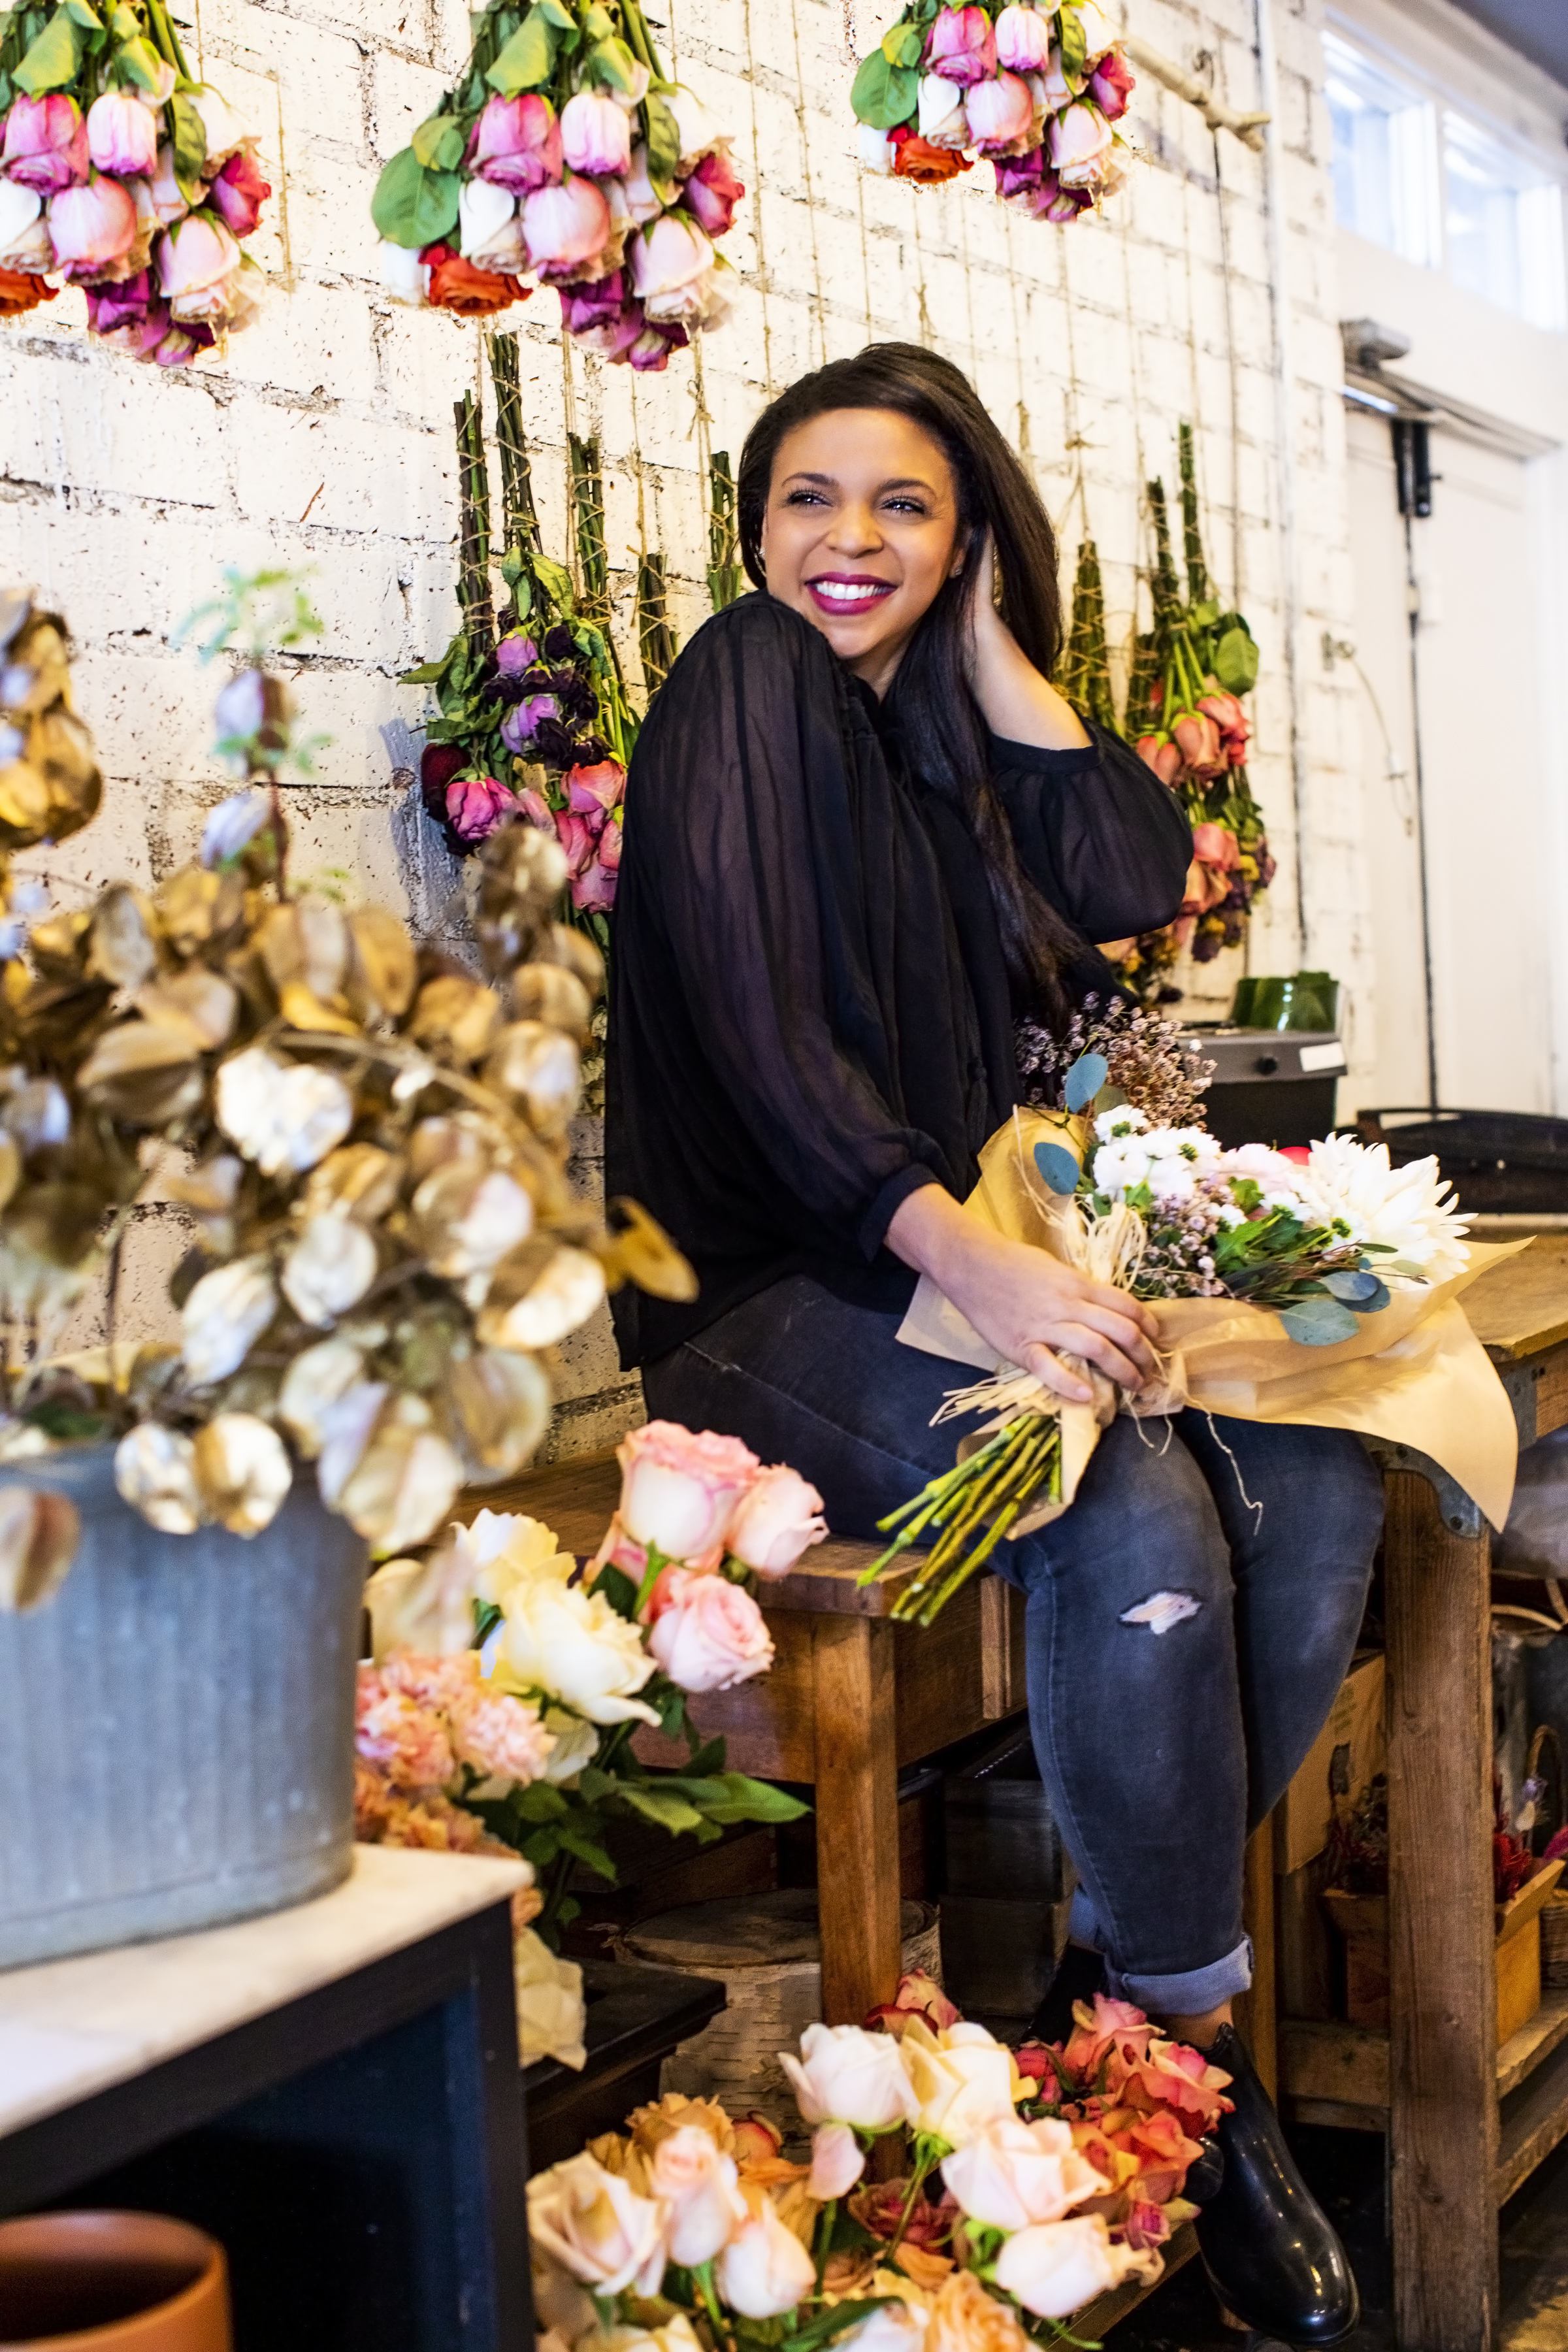 Dr. Sandra Colton-Medici sitting on bench surrounded by flowers in flower shop for Spring 2021.